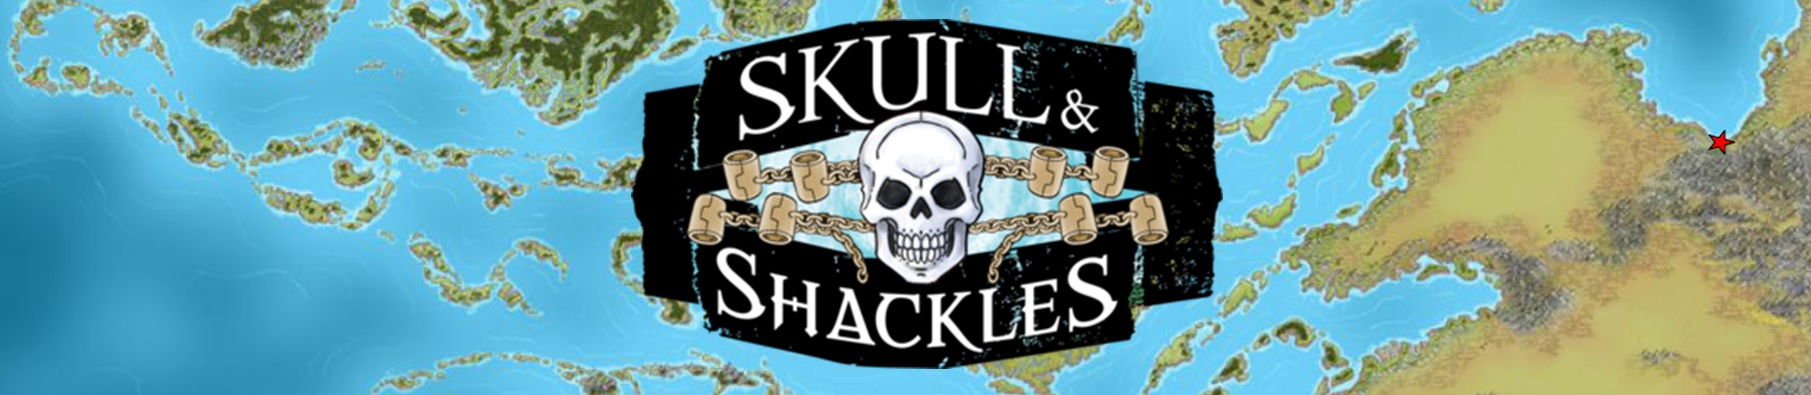 Skull and shackles banner